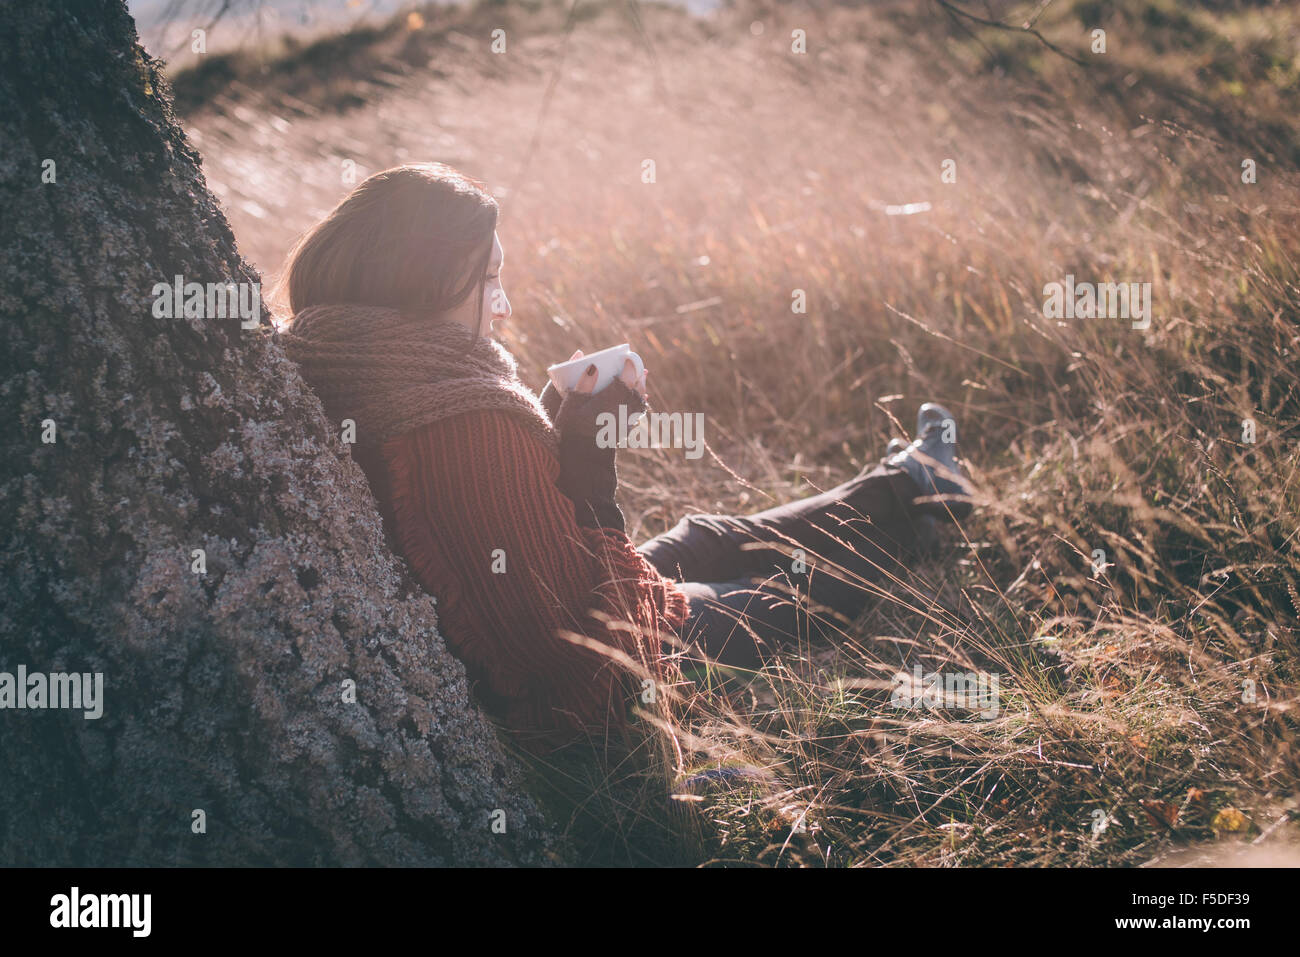 Woman in nature drinking tea or coffee. - Stock Image